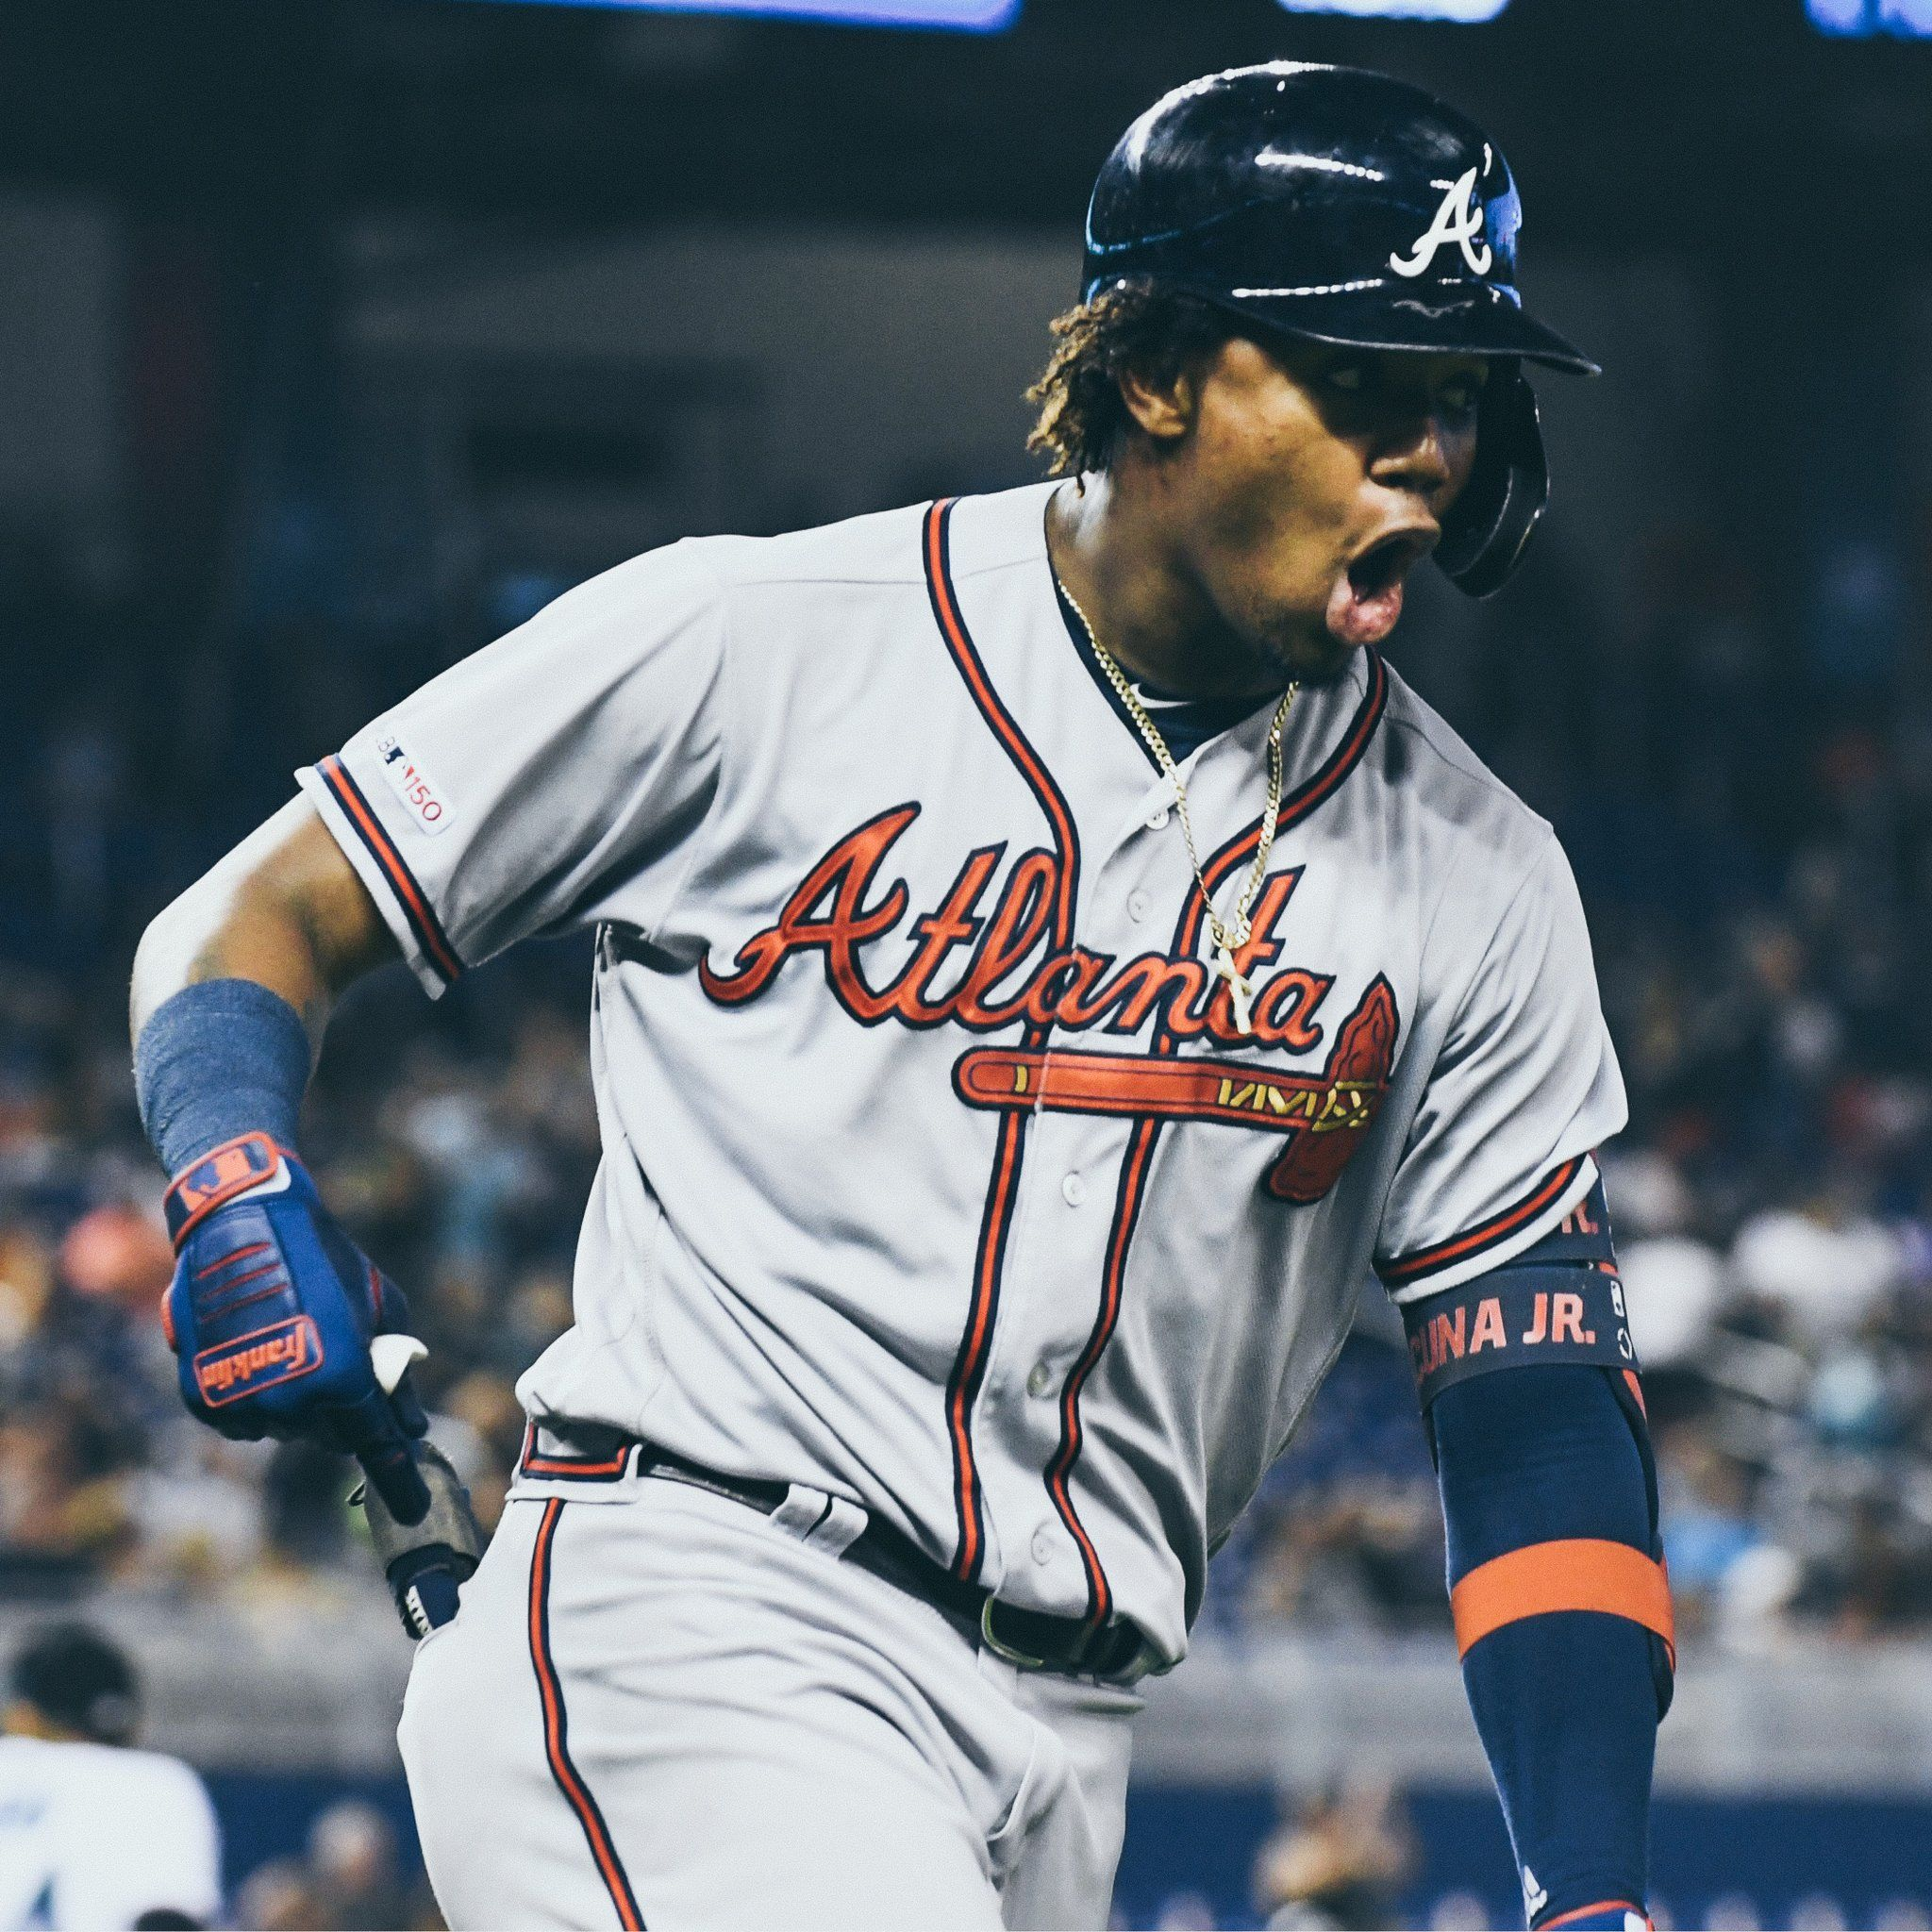 Mlb On Twitter Braves Baseball Atlanta Braves Baseball Atlanta Braves